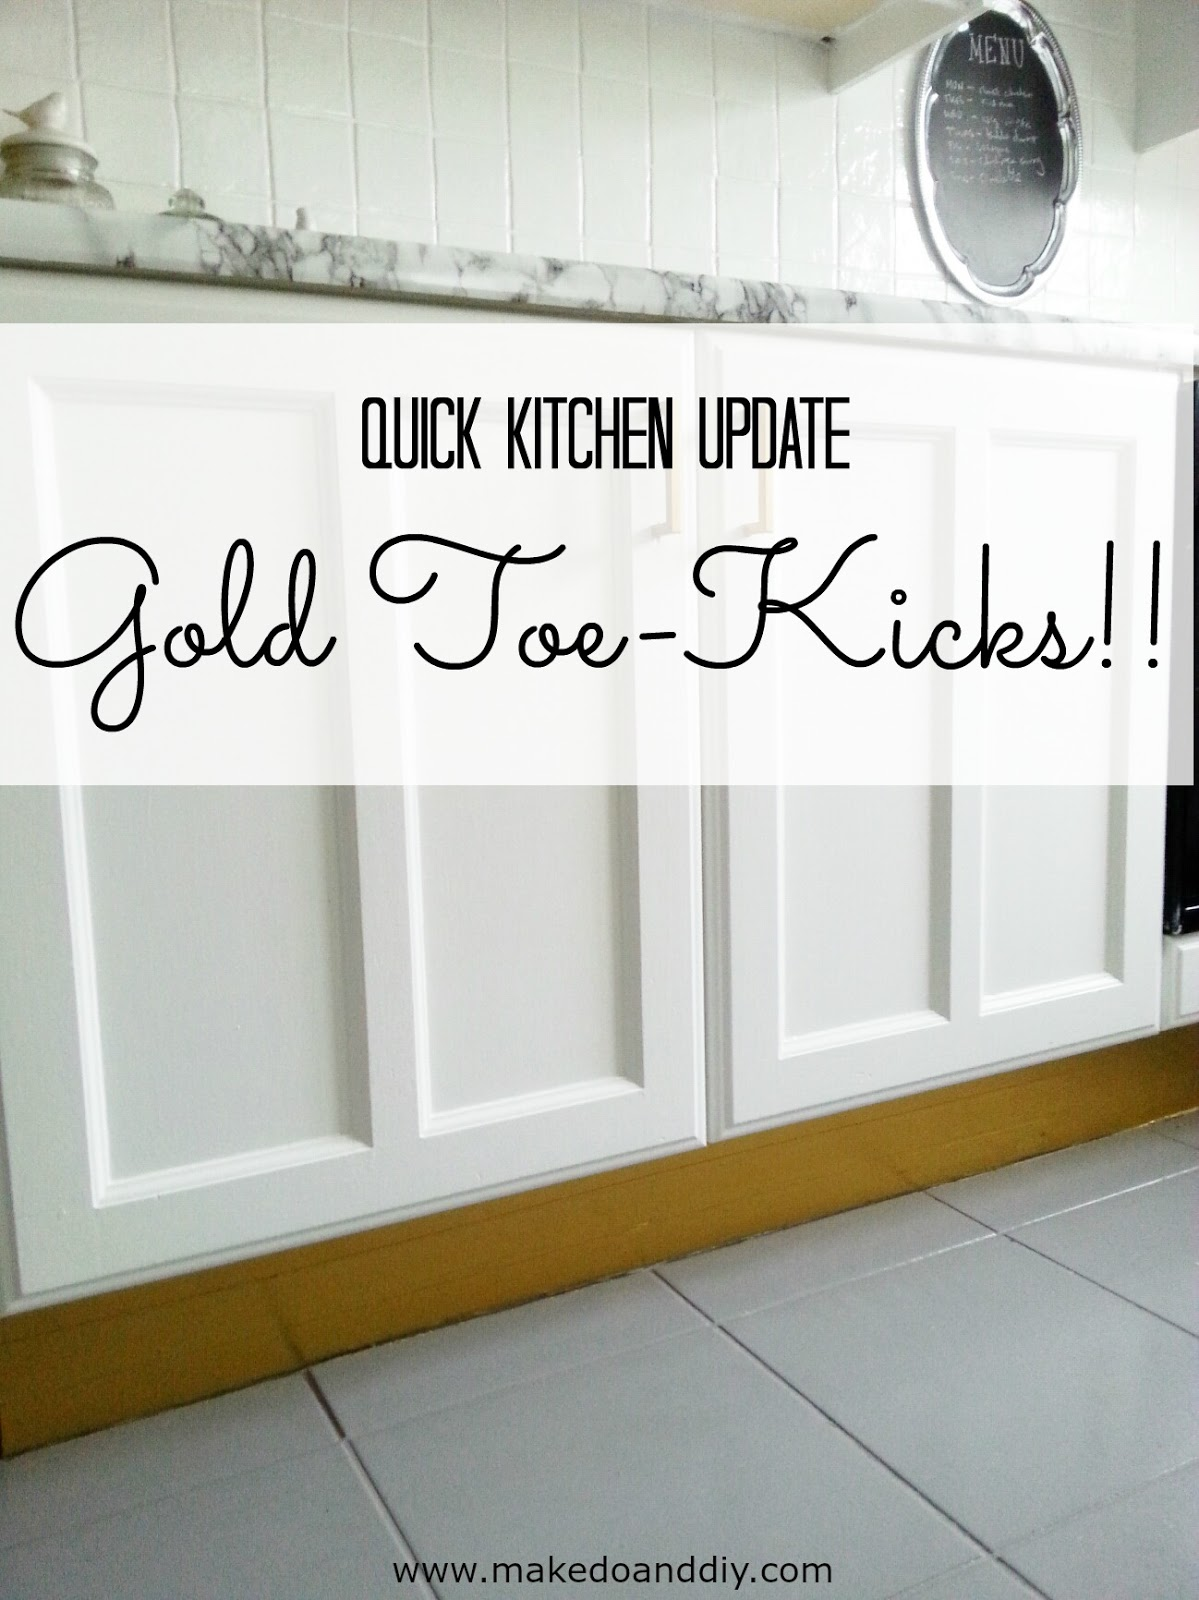 gold toe-kicks (for realz) ~ Make Do and DIY